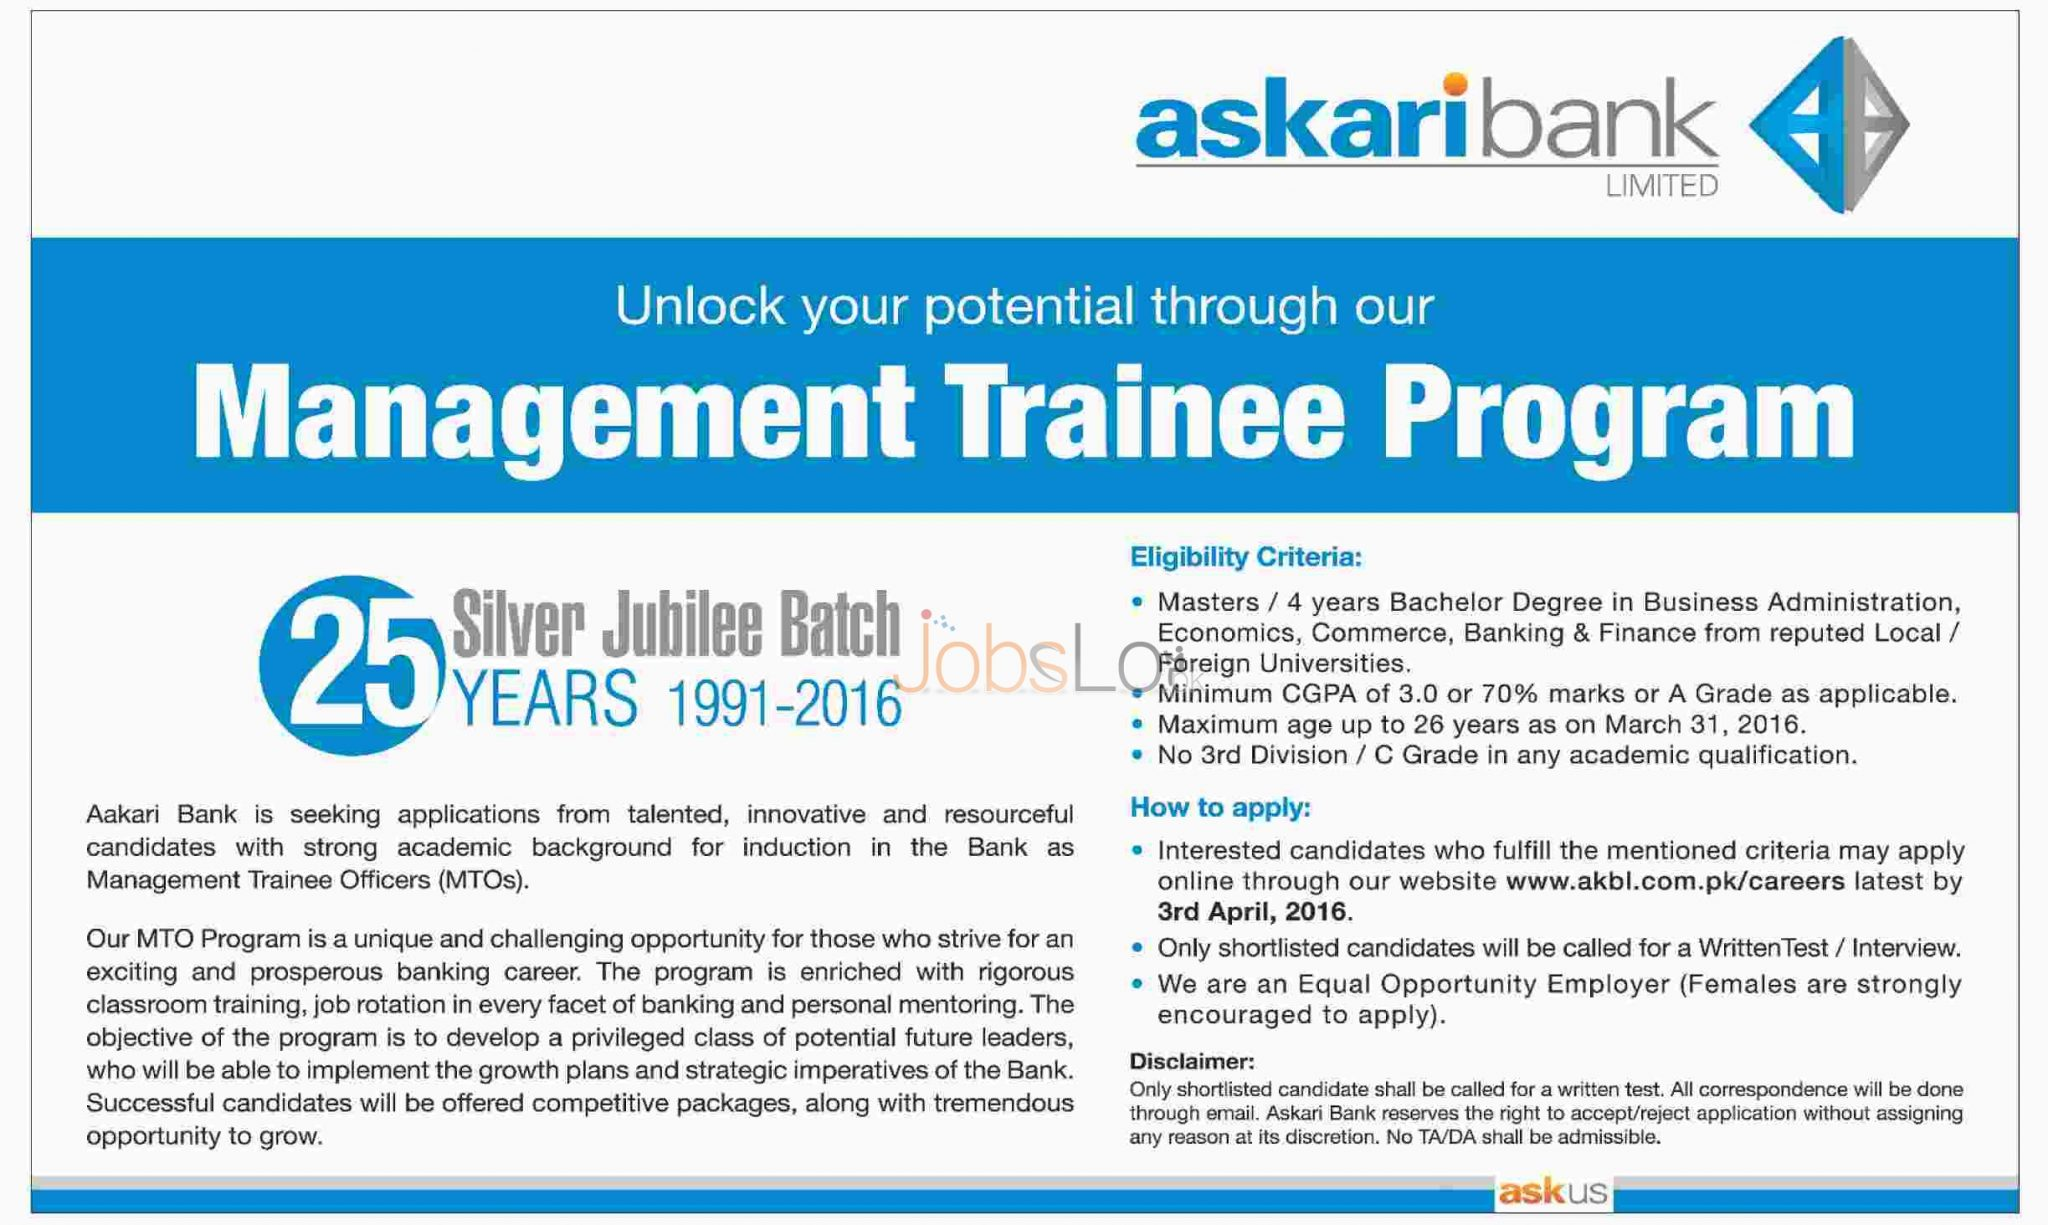 Recruitment Offers in Askari Bank Ltd Jobs 2016 Apply Online For MTO's Eligibility Criteria